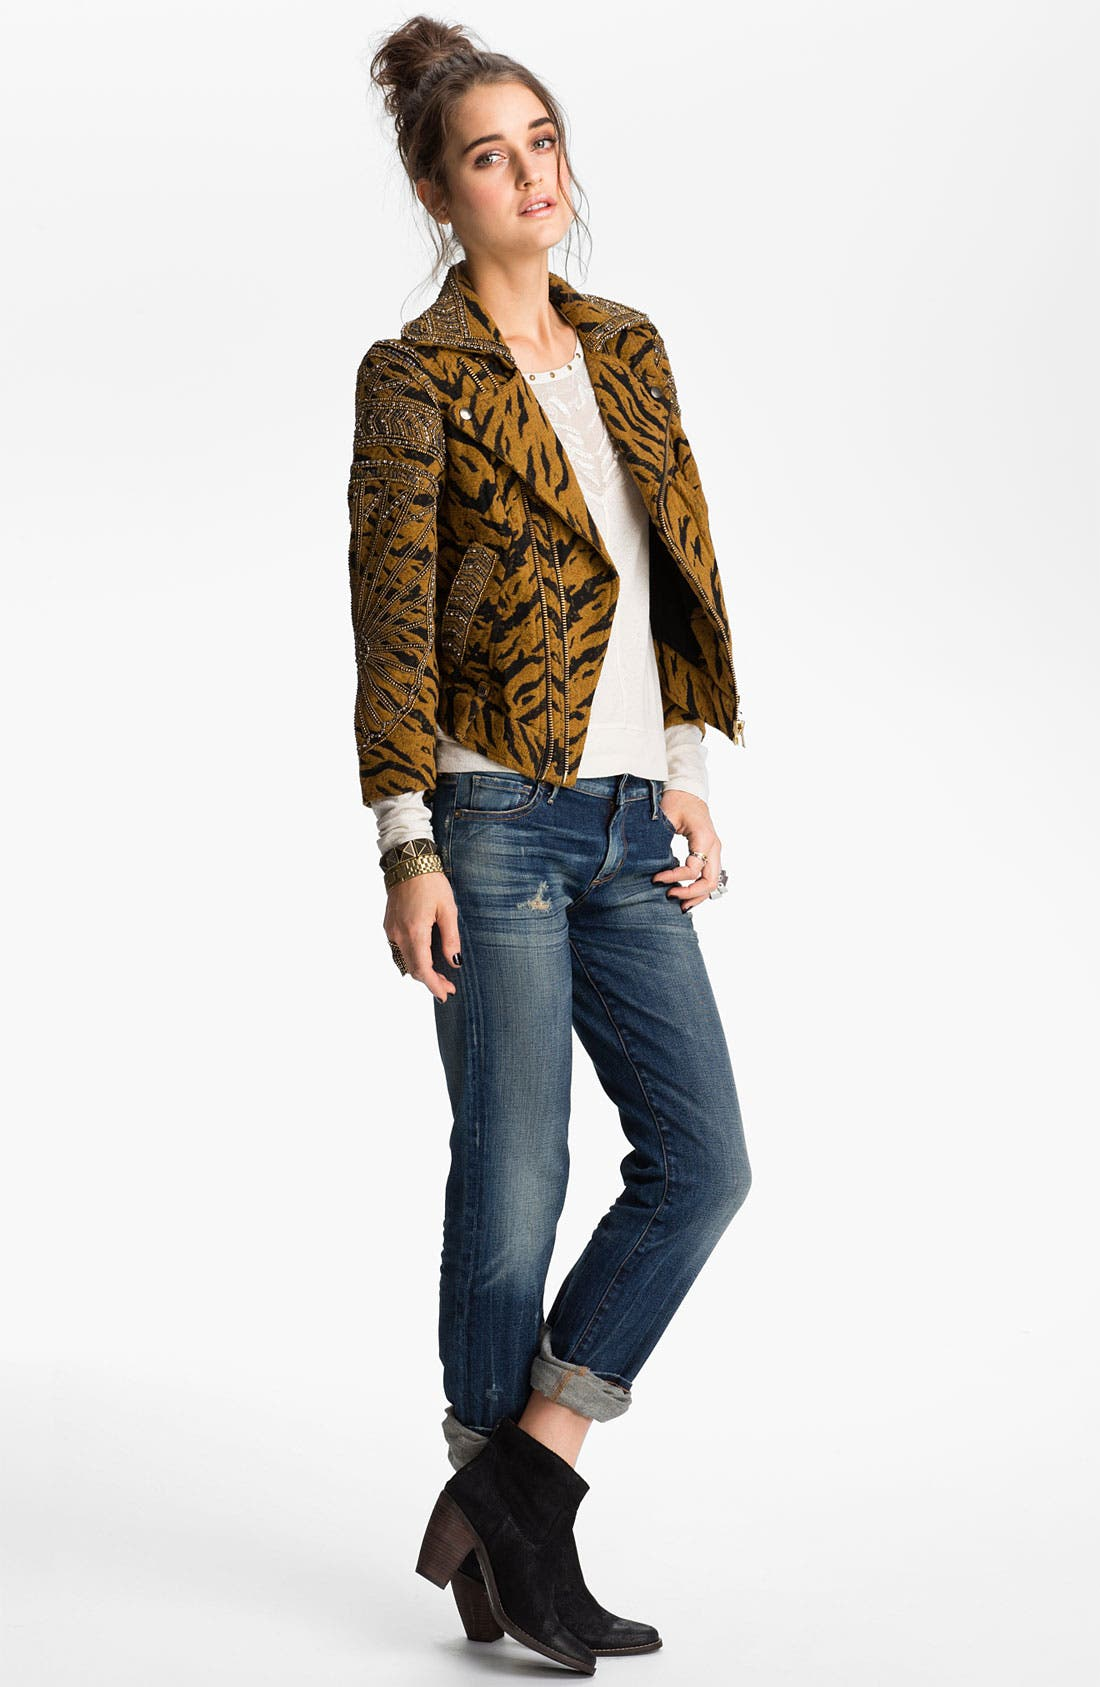 Alternate Image 1 Selected - Free People Embellished Tiger Jacquard Biker Jacket